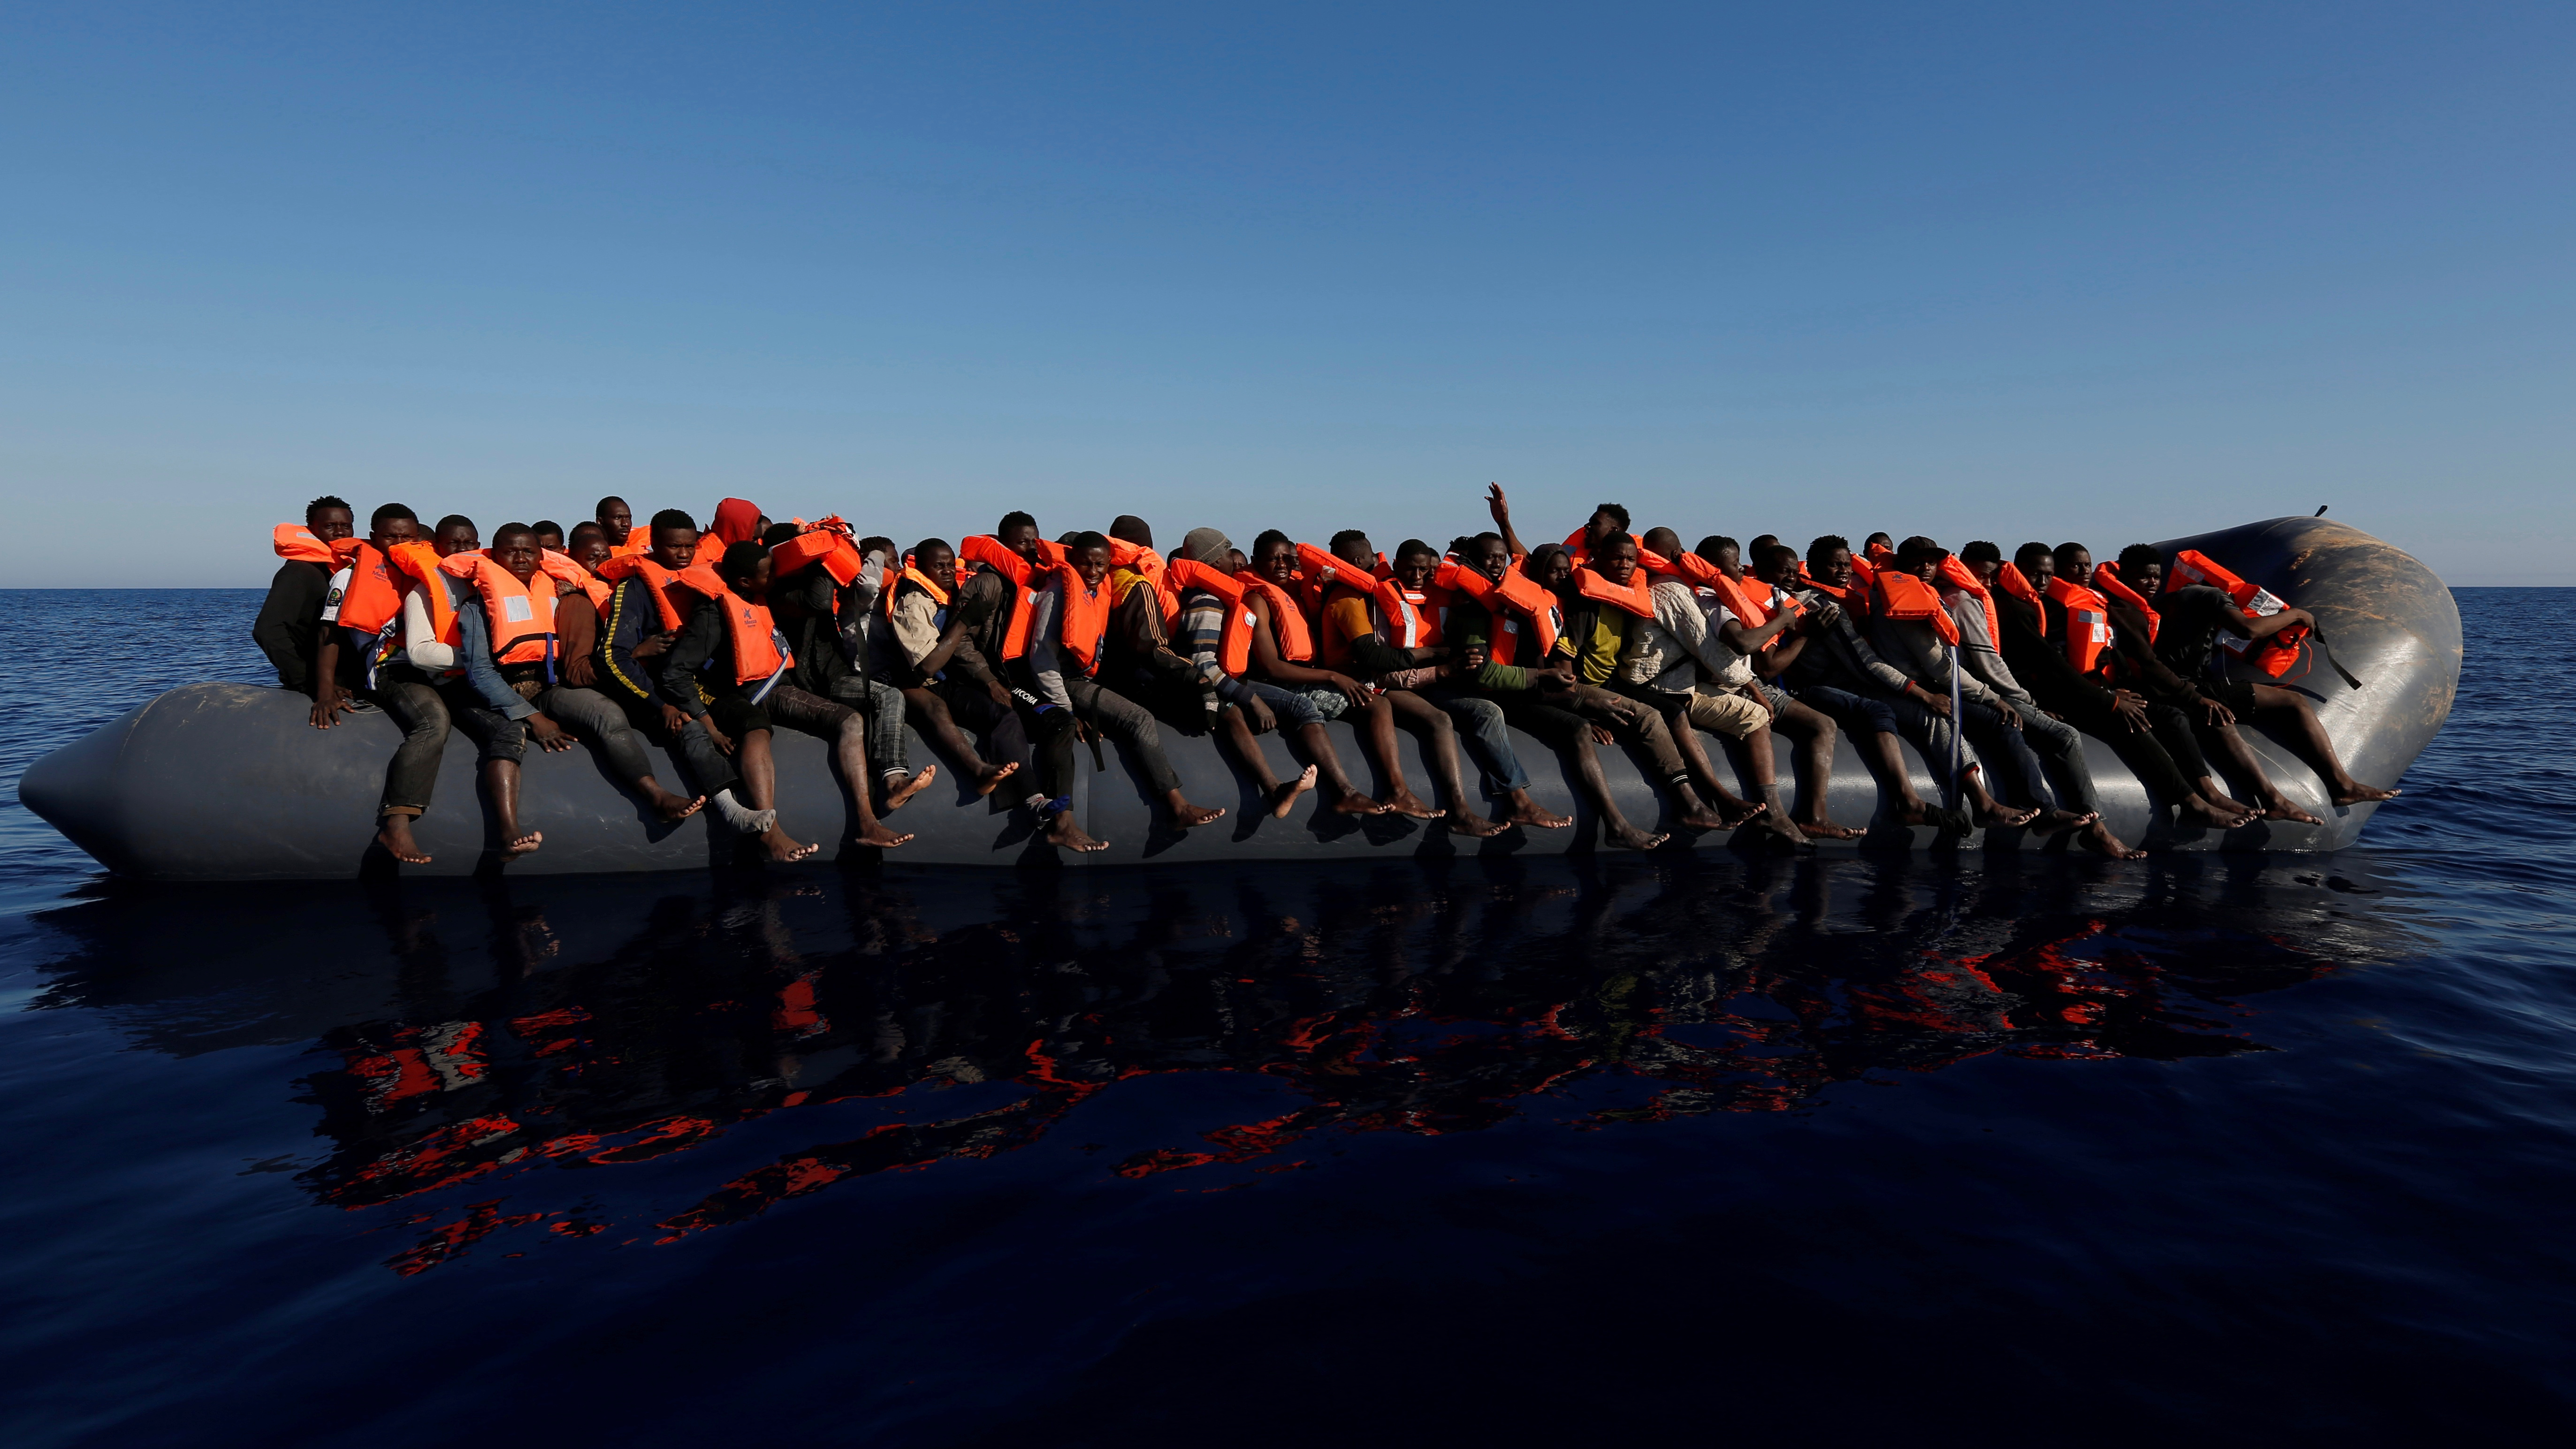 Migrant crisis: Facebook refuses to remove video of migrants trapped and torutured in Libya